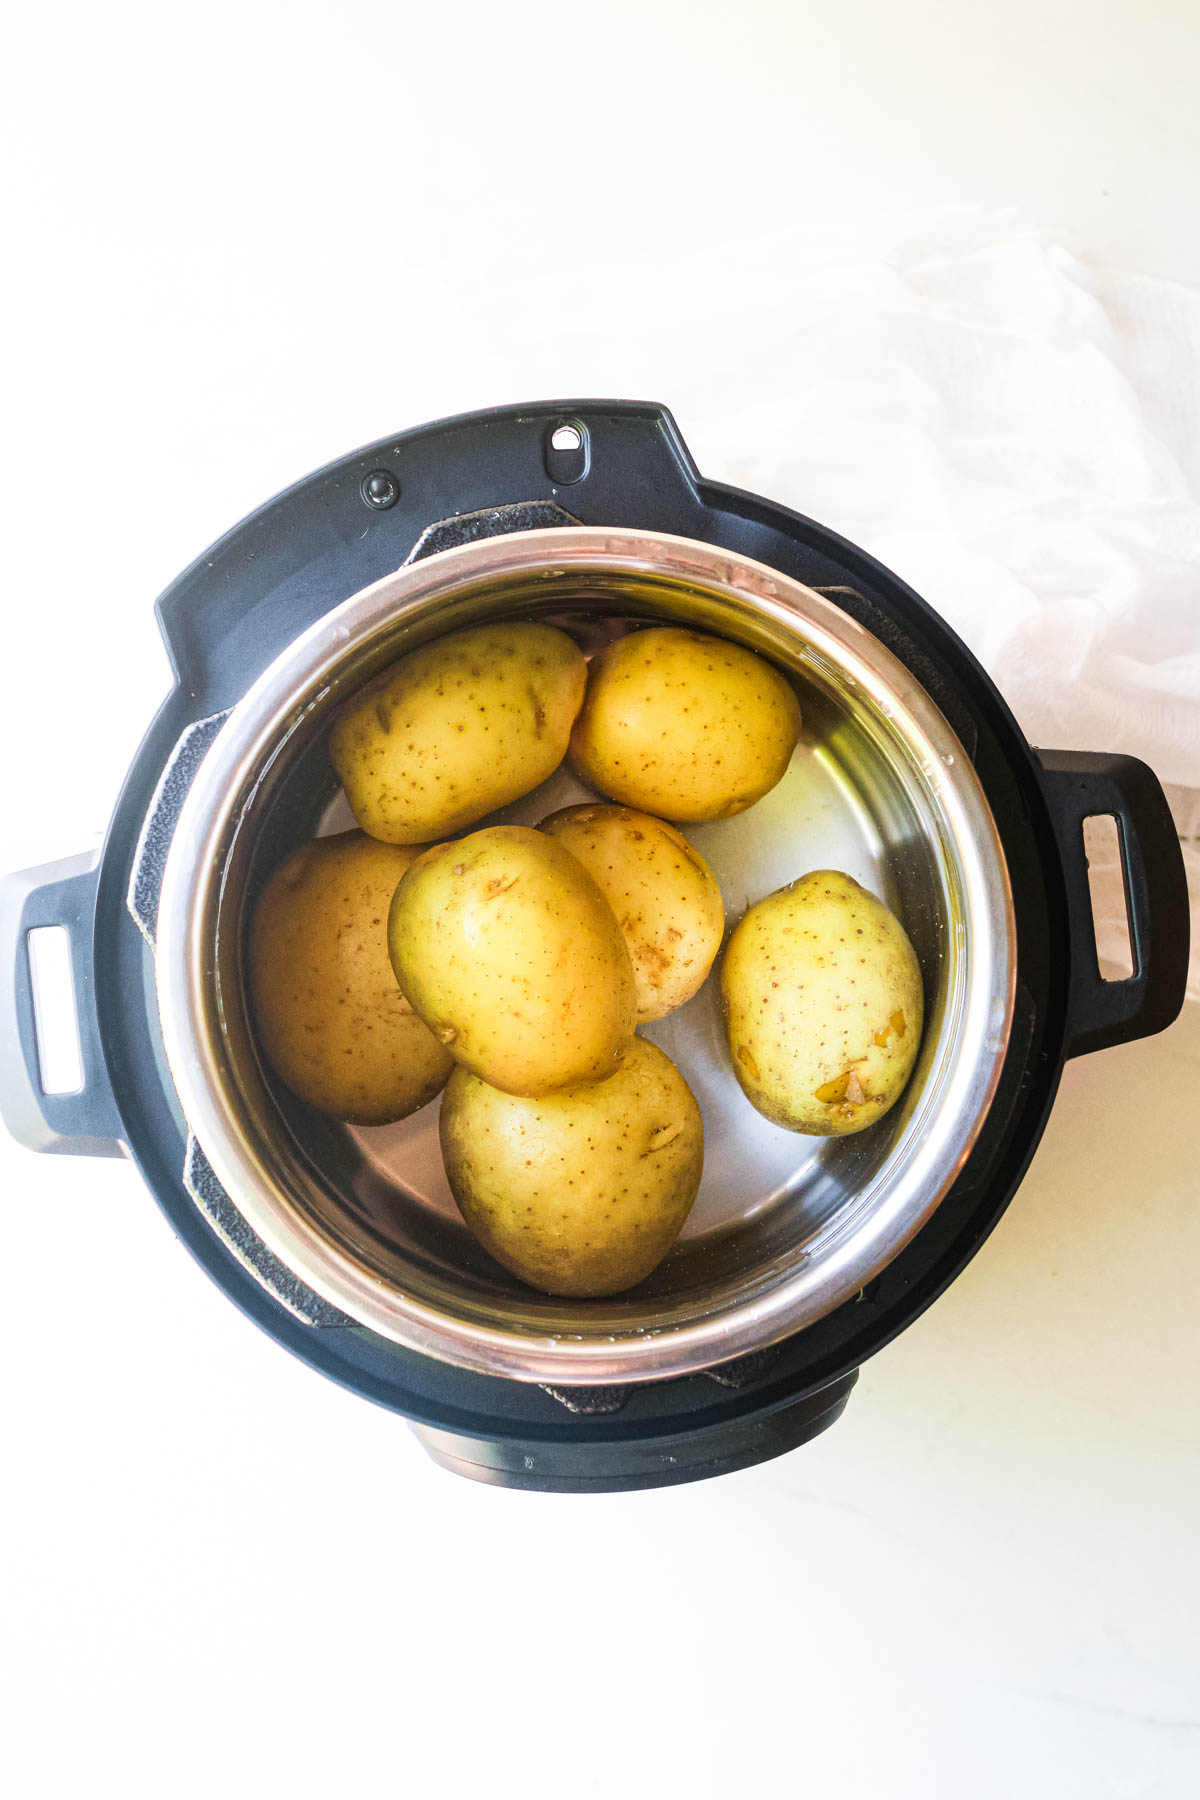 Potatoes in an instant pot ready to be cooked